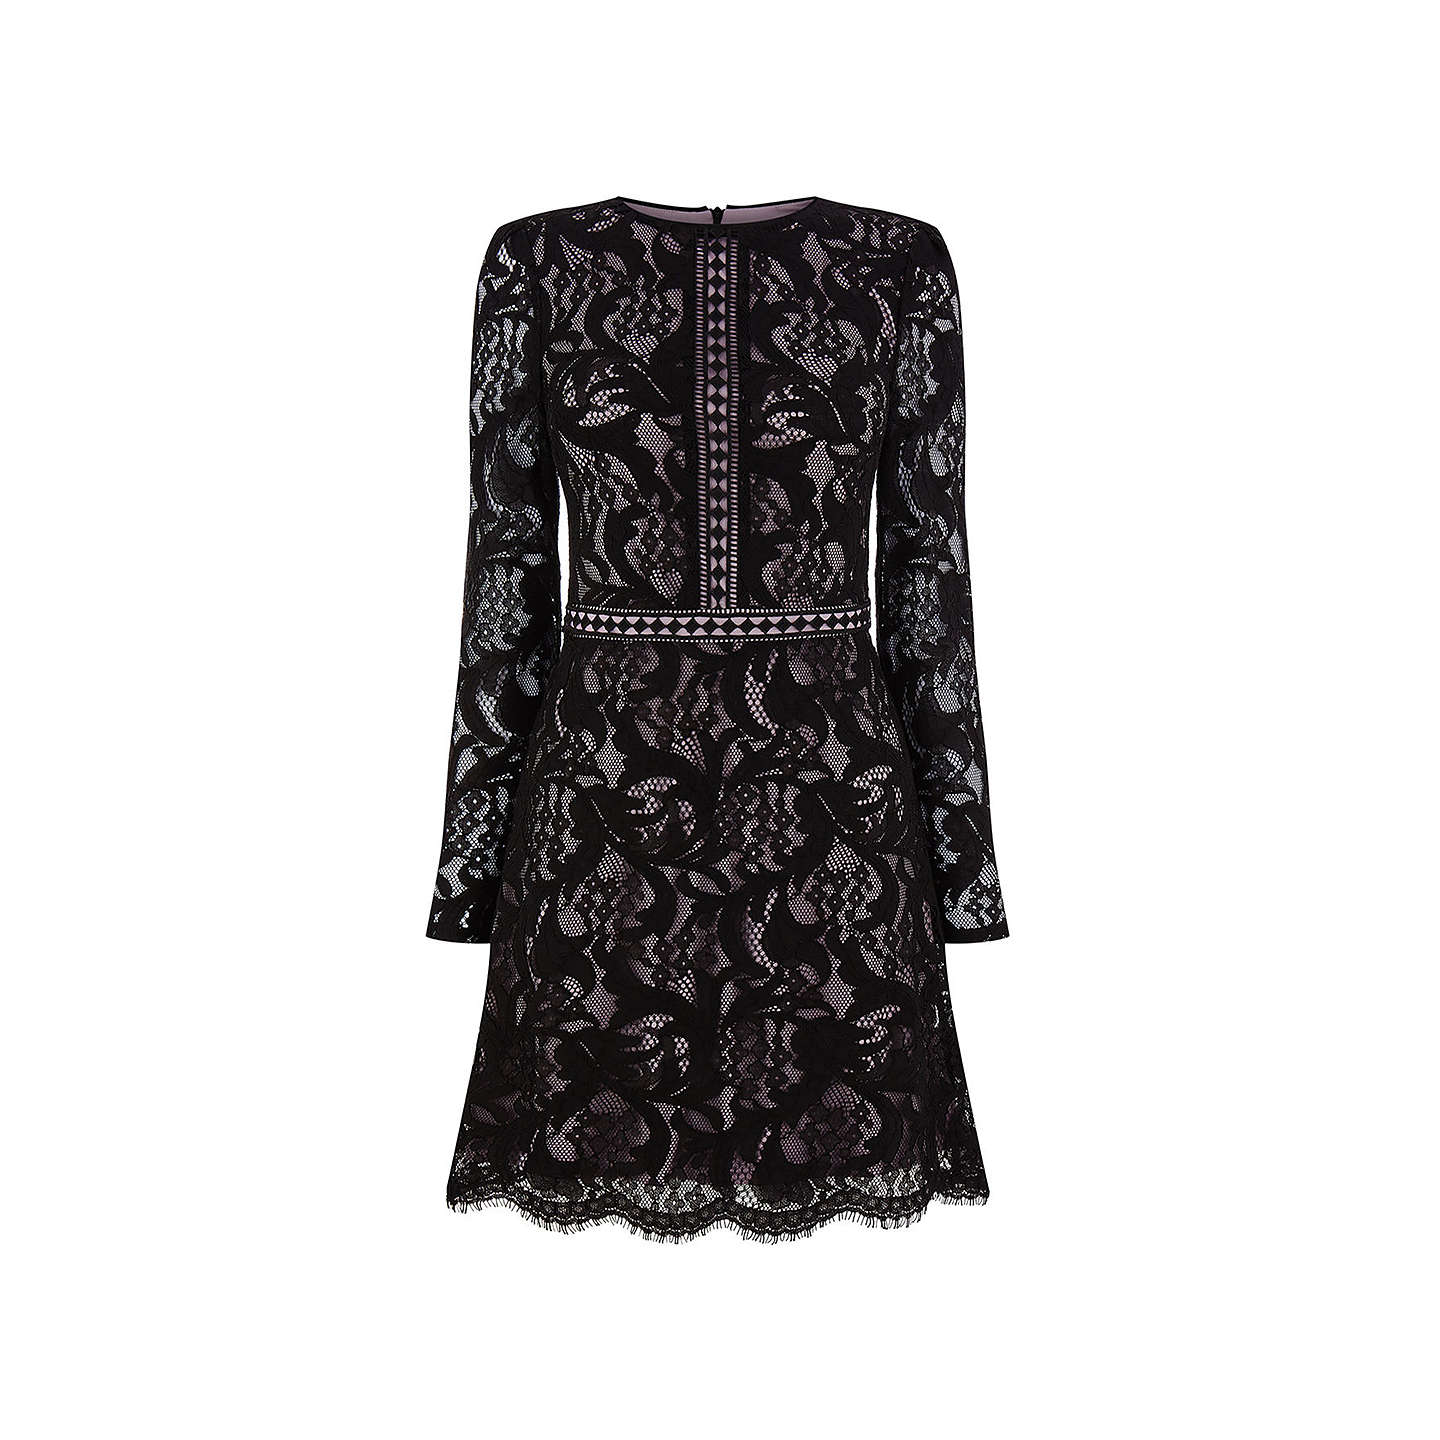 BuyOasis Lace Long Sleeve Dress, Black, 6 Online at johnlewis.com